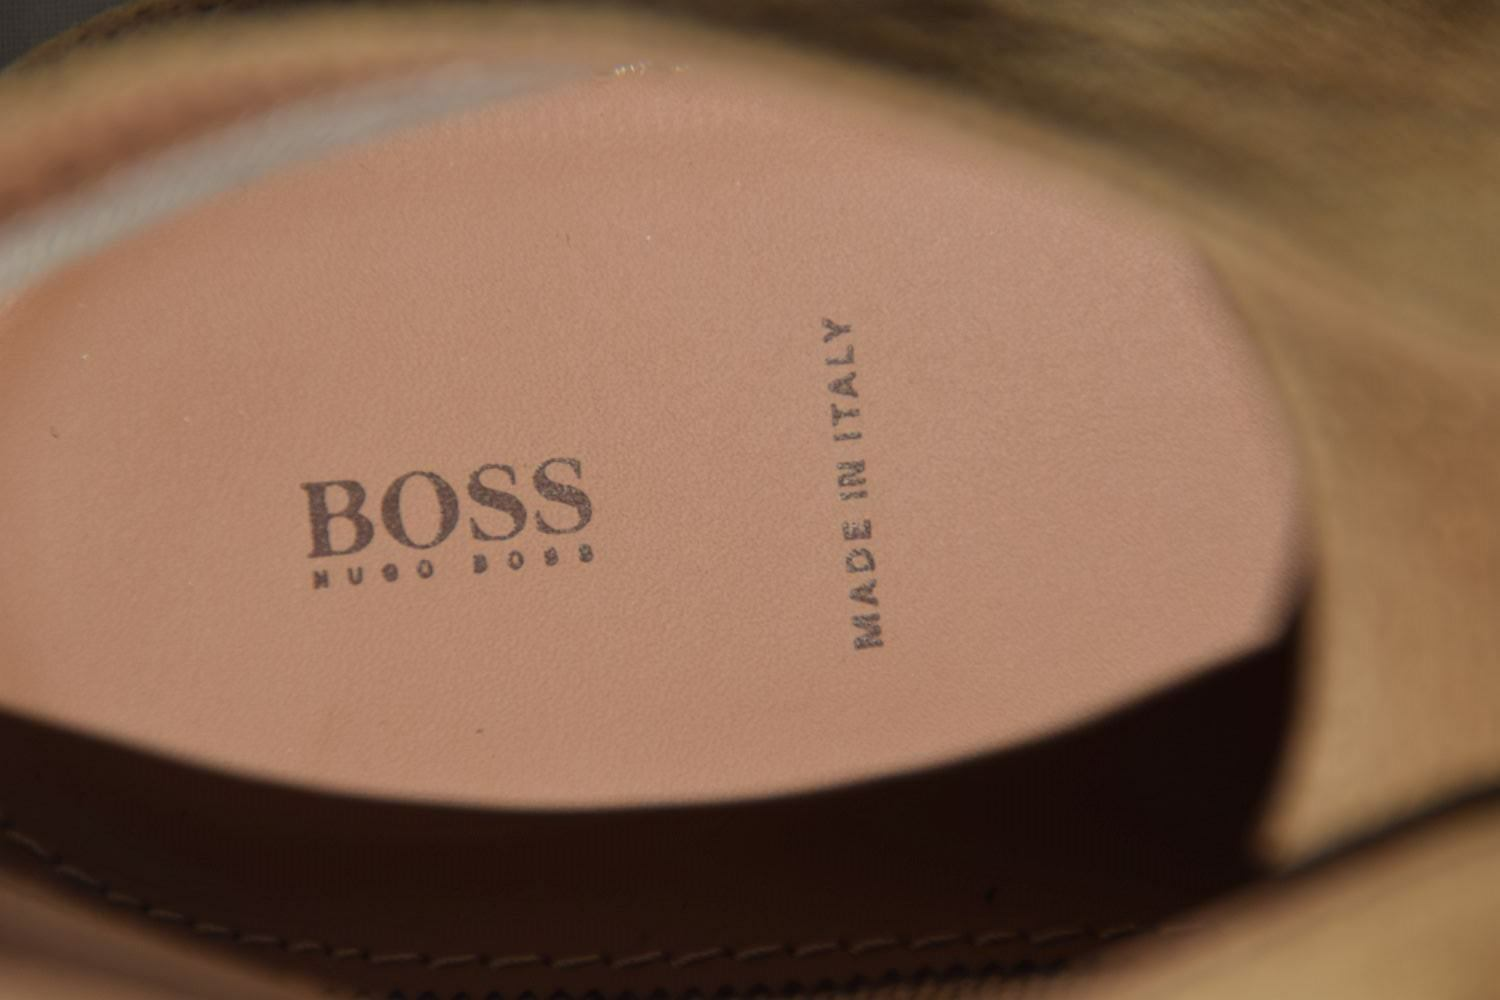 HUGO BOSS Stiefel, Gr. 42 / UK 8 / US 9, 9, US   Made in , Medium Braun a4c256